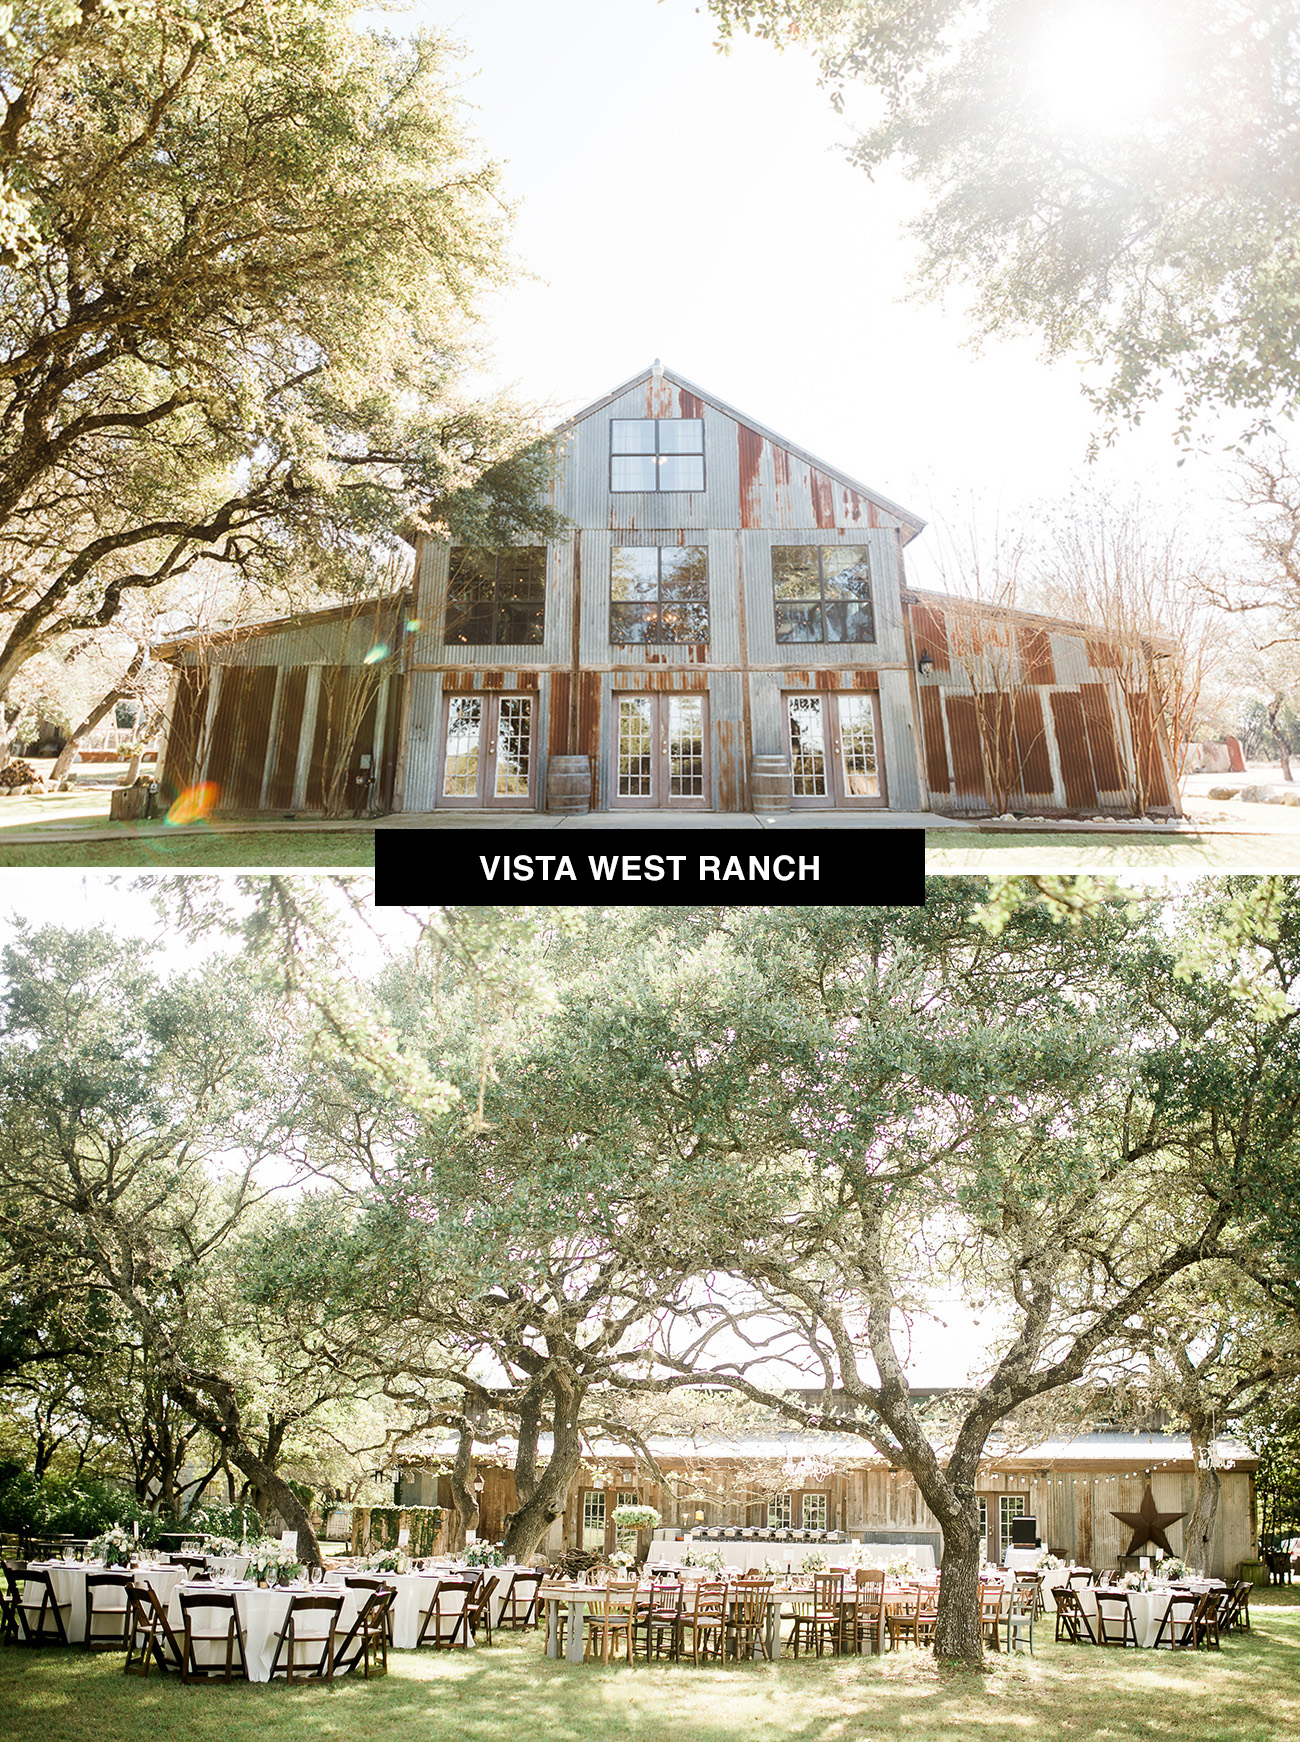 Vista West Ranch wedding venue in Texas is perfect for those seeking a rustic ranch vibe